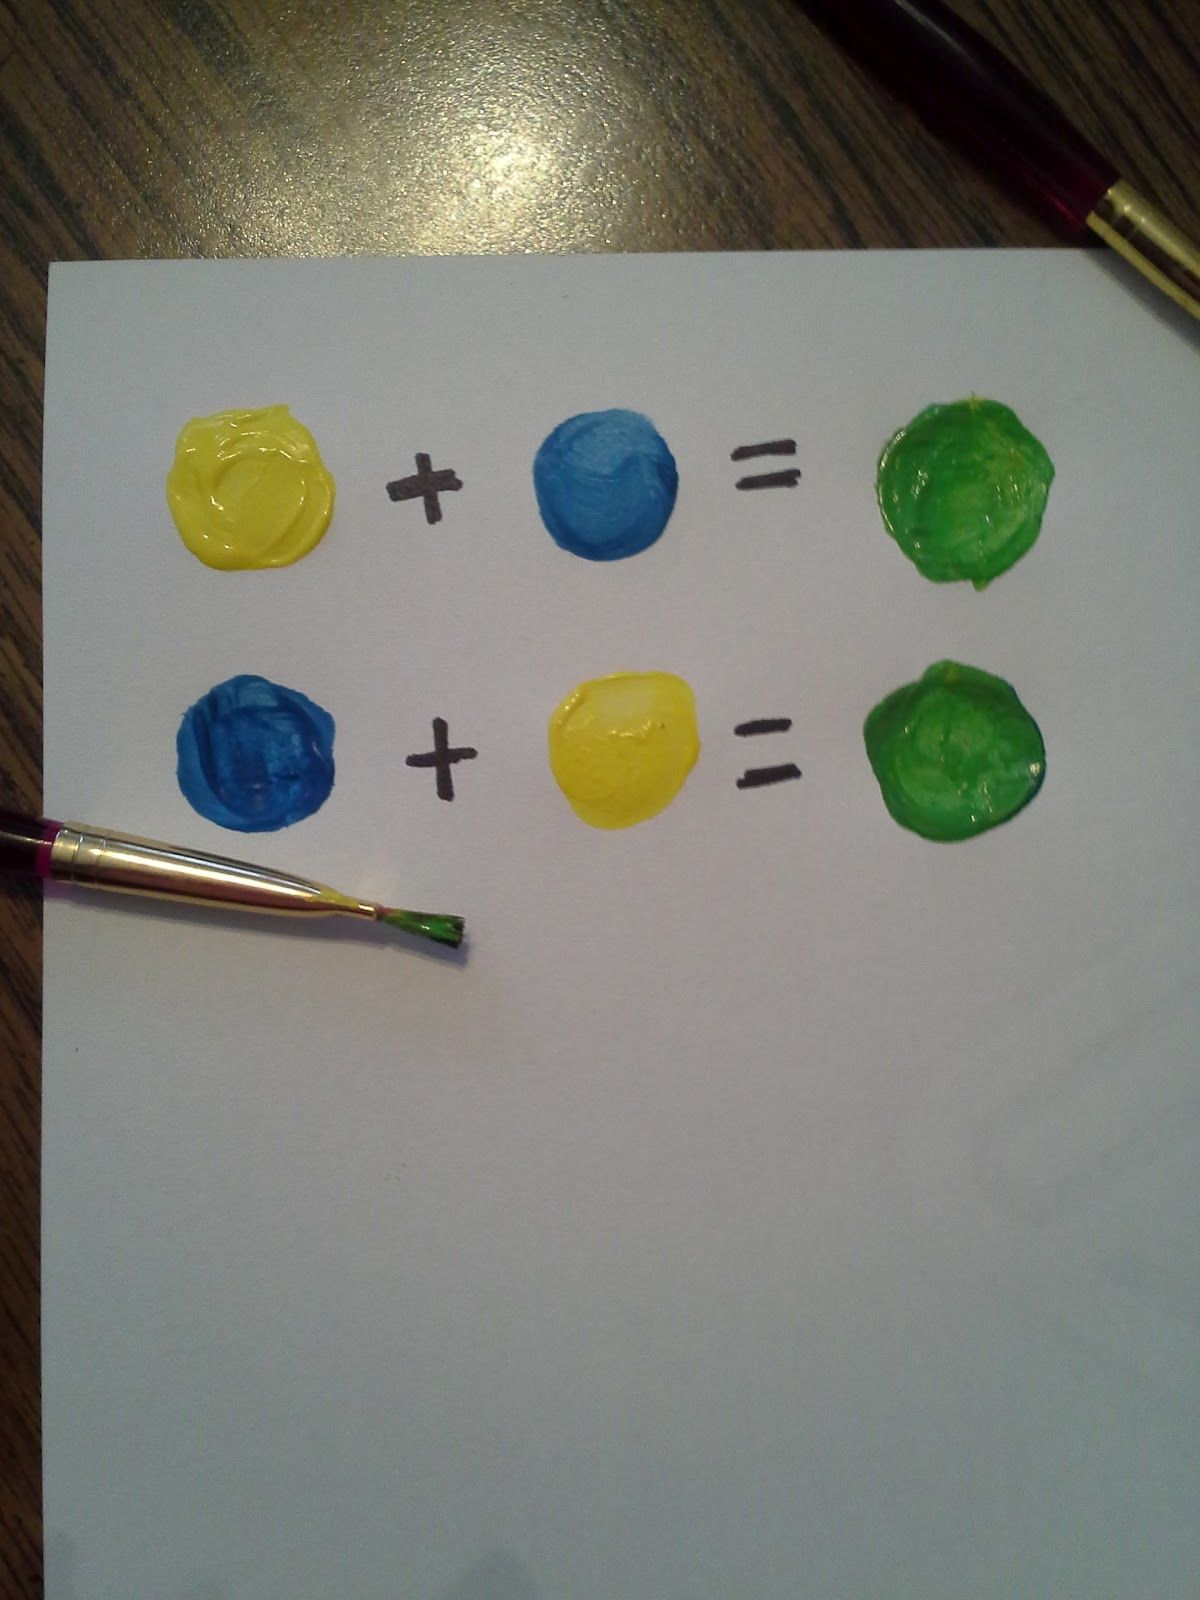 Commutative Property No Matter Whether You Use Yellow Or